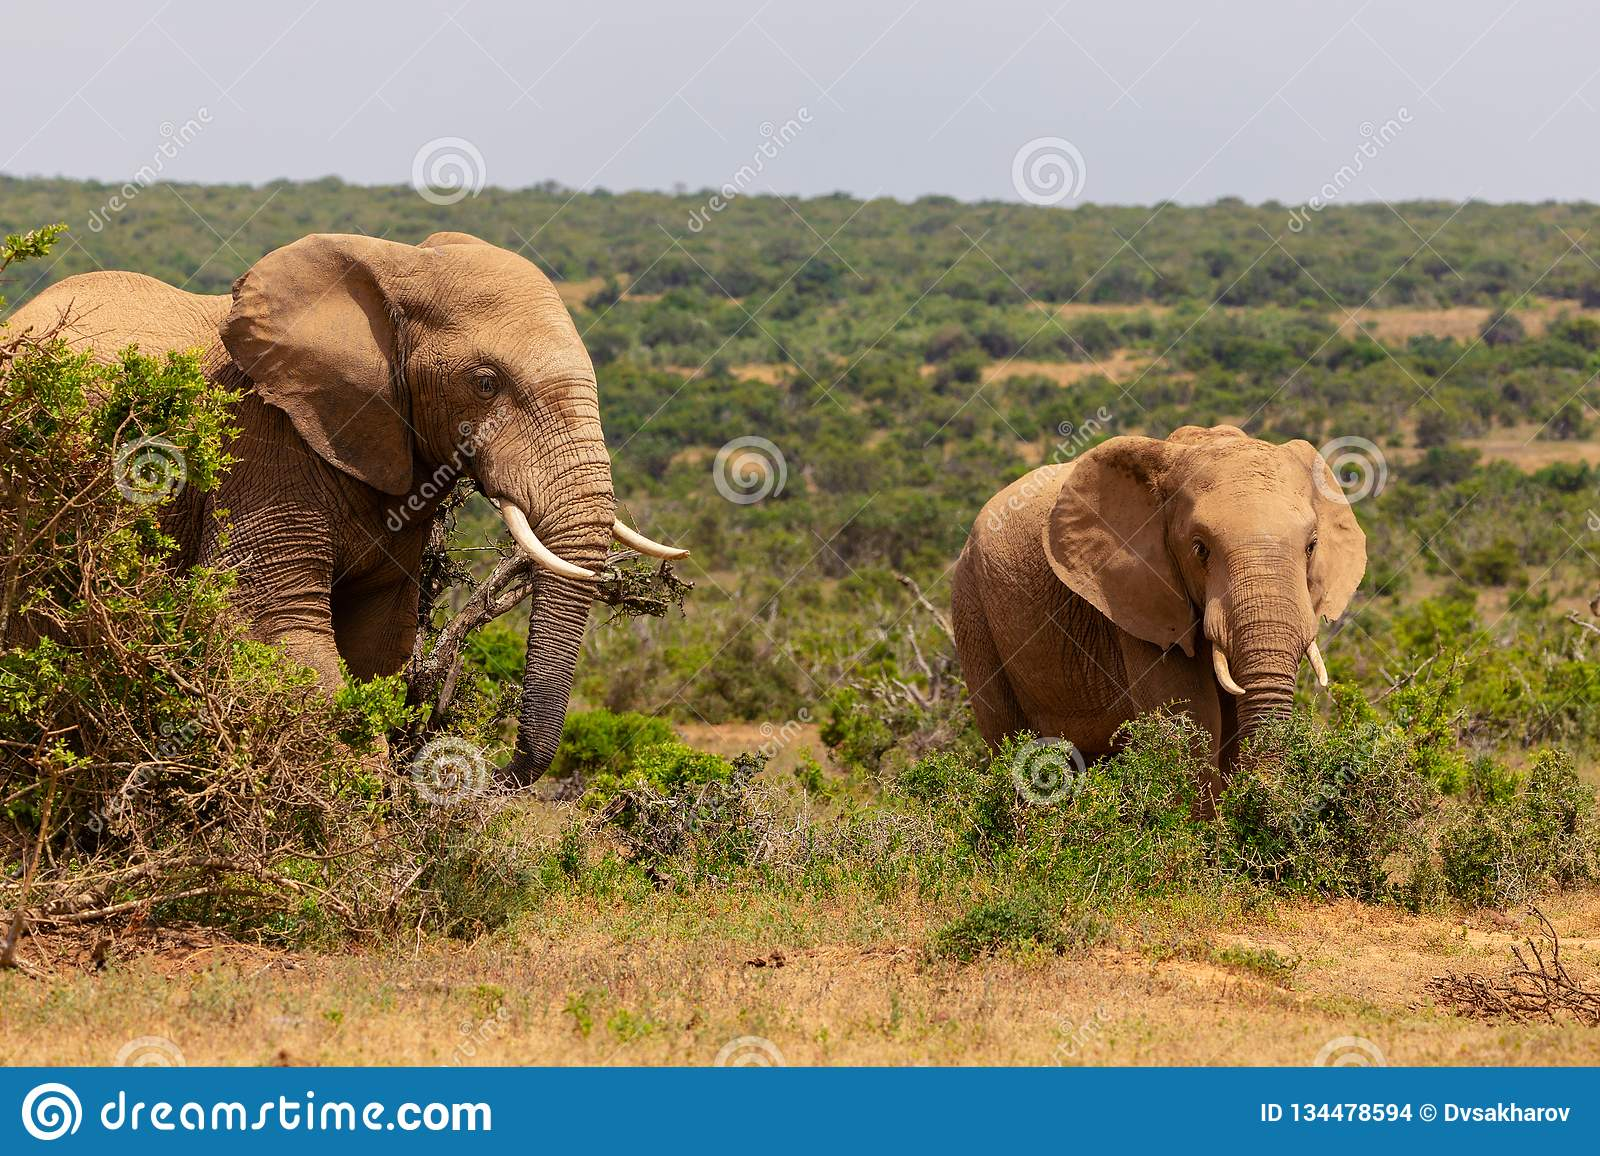 Adult elephant and baby elephant walking together in Addo National Park